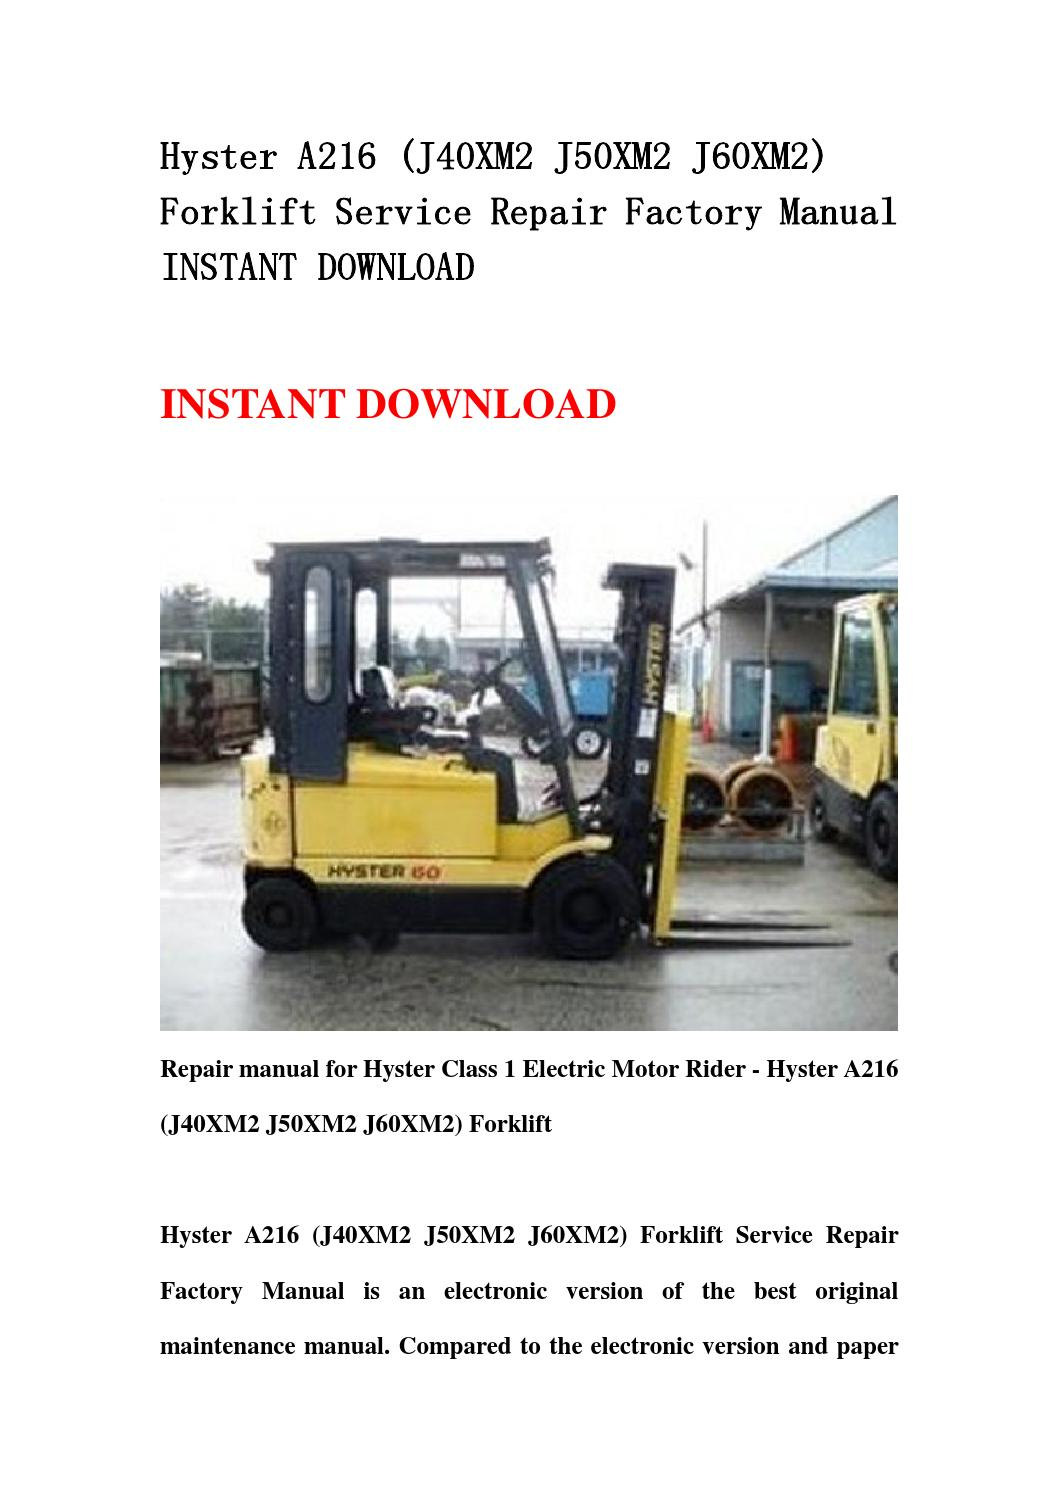 Hyster A216  J40xm2 J50xm2 J60xm2  Forklift Service Repair Factory Manual Instant Download By